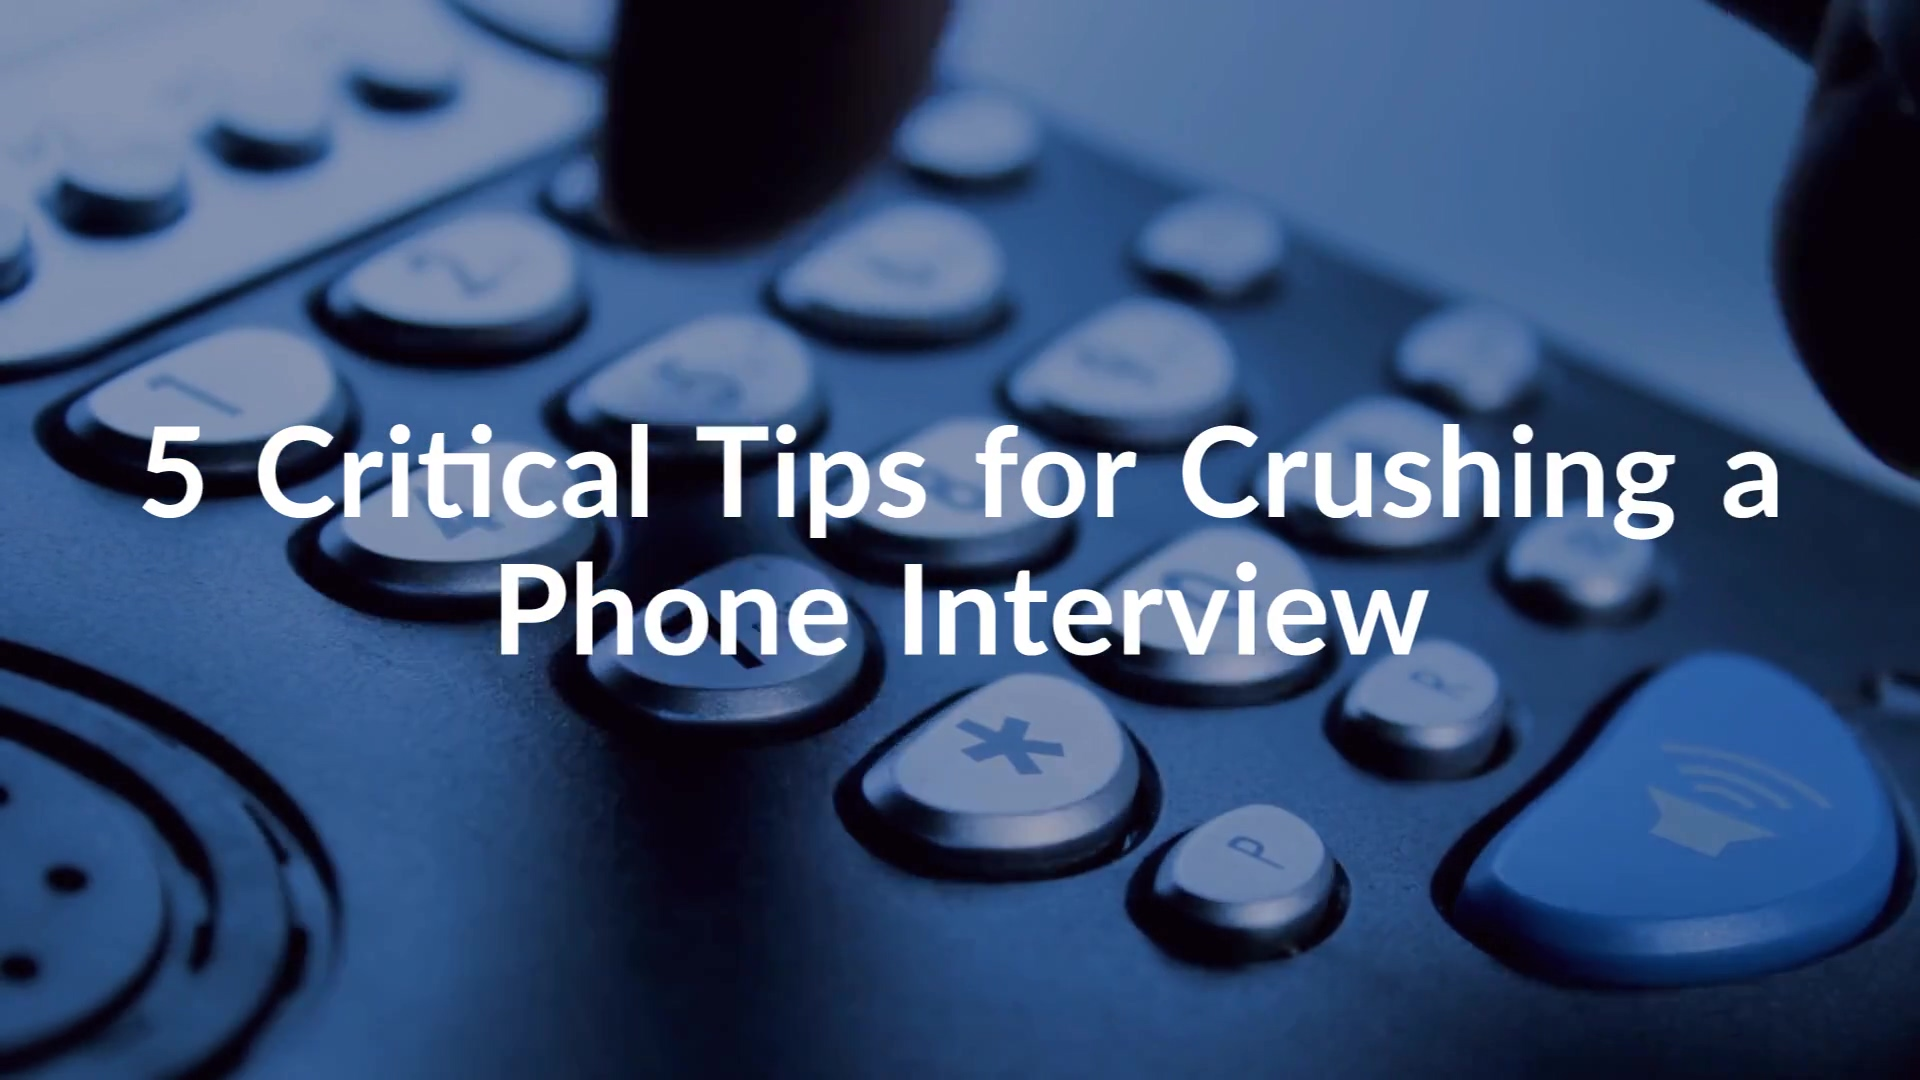 5-critical-tips-for-crushing-a-phone-interview (3)